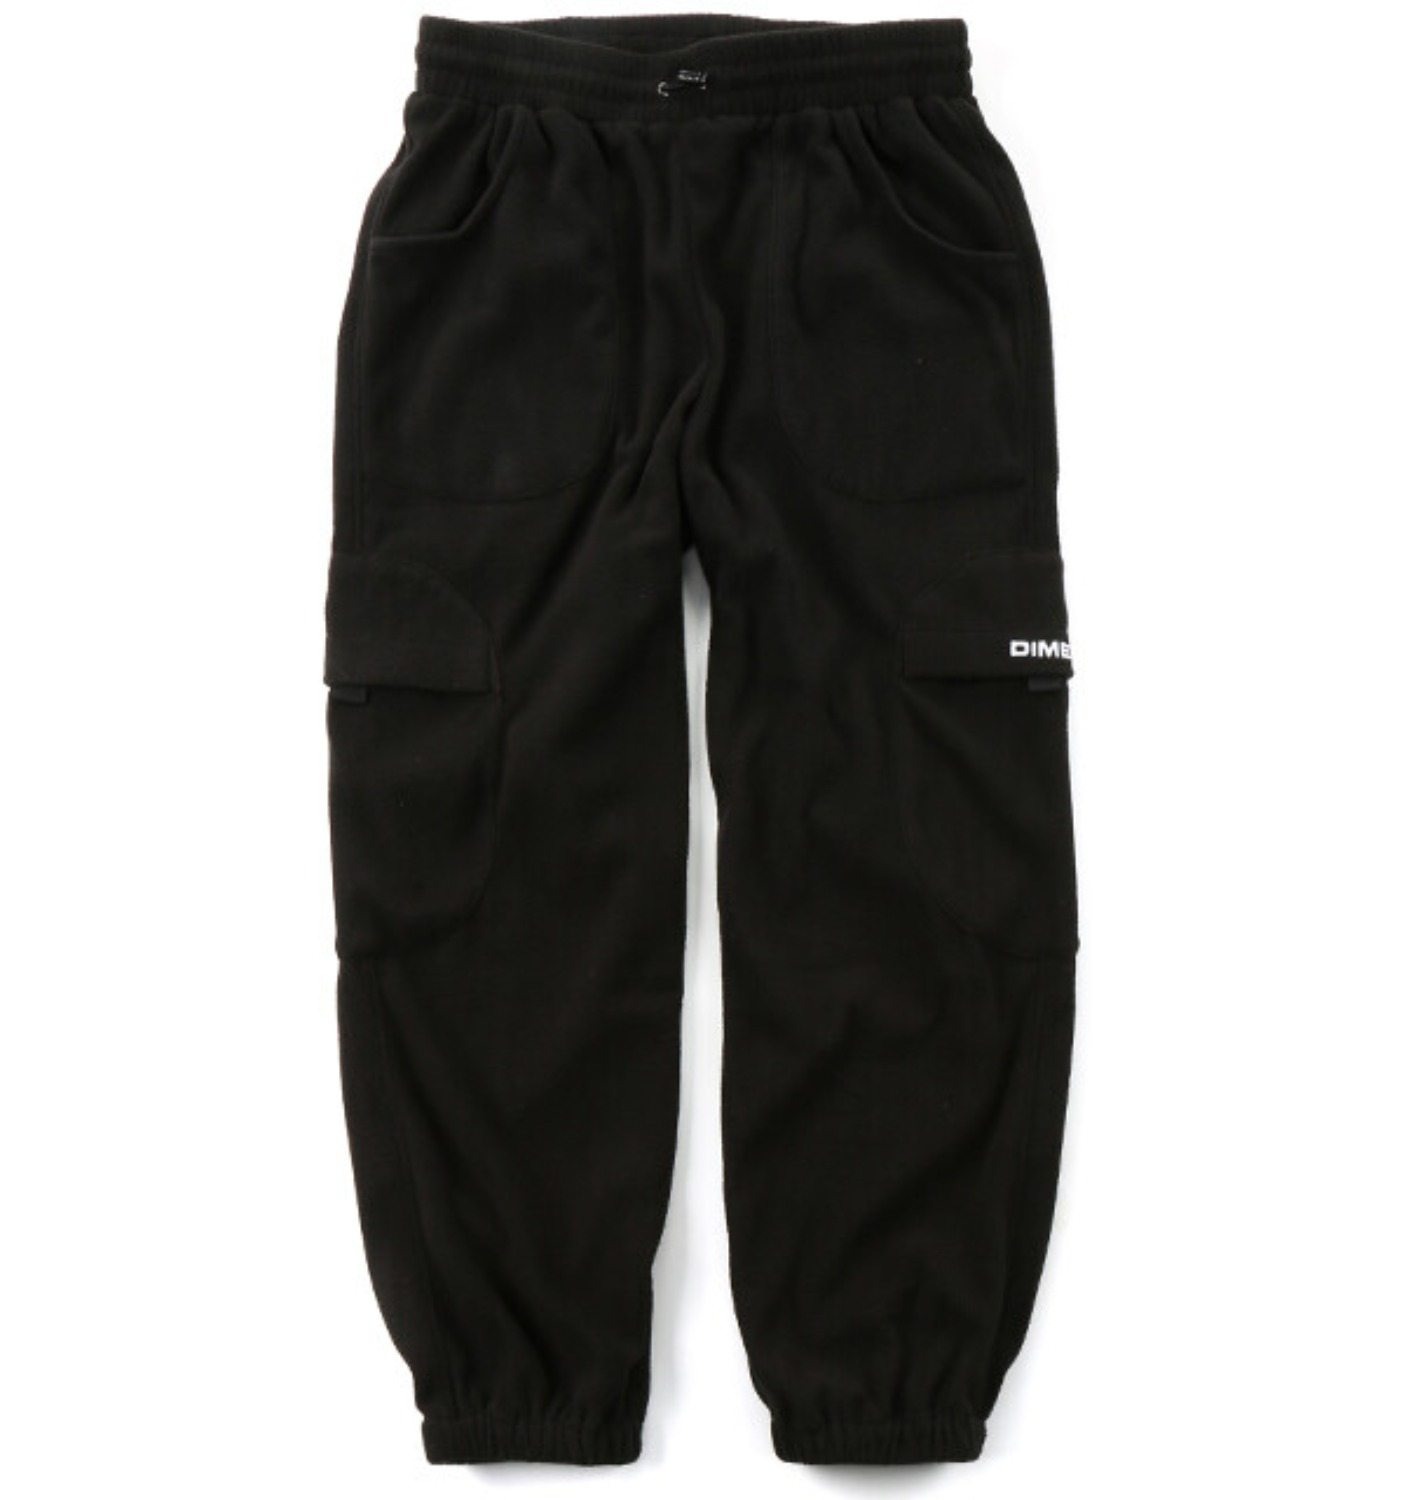 FLEECE ROUND CARGO PANTS BLACK